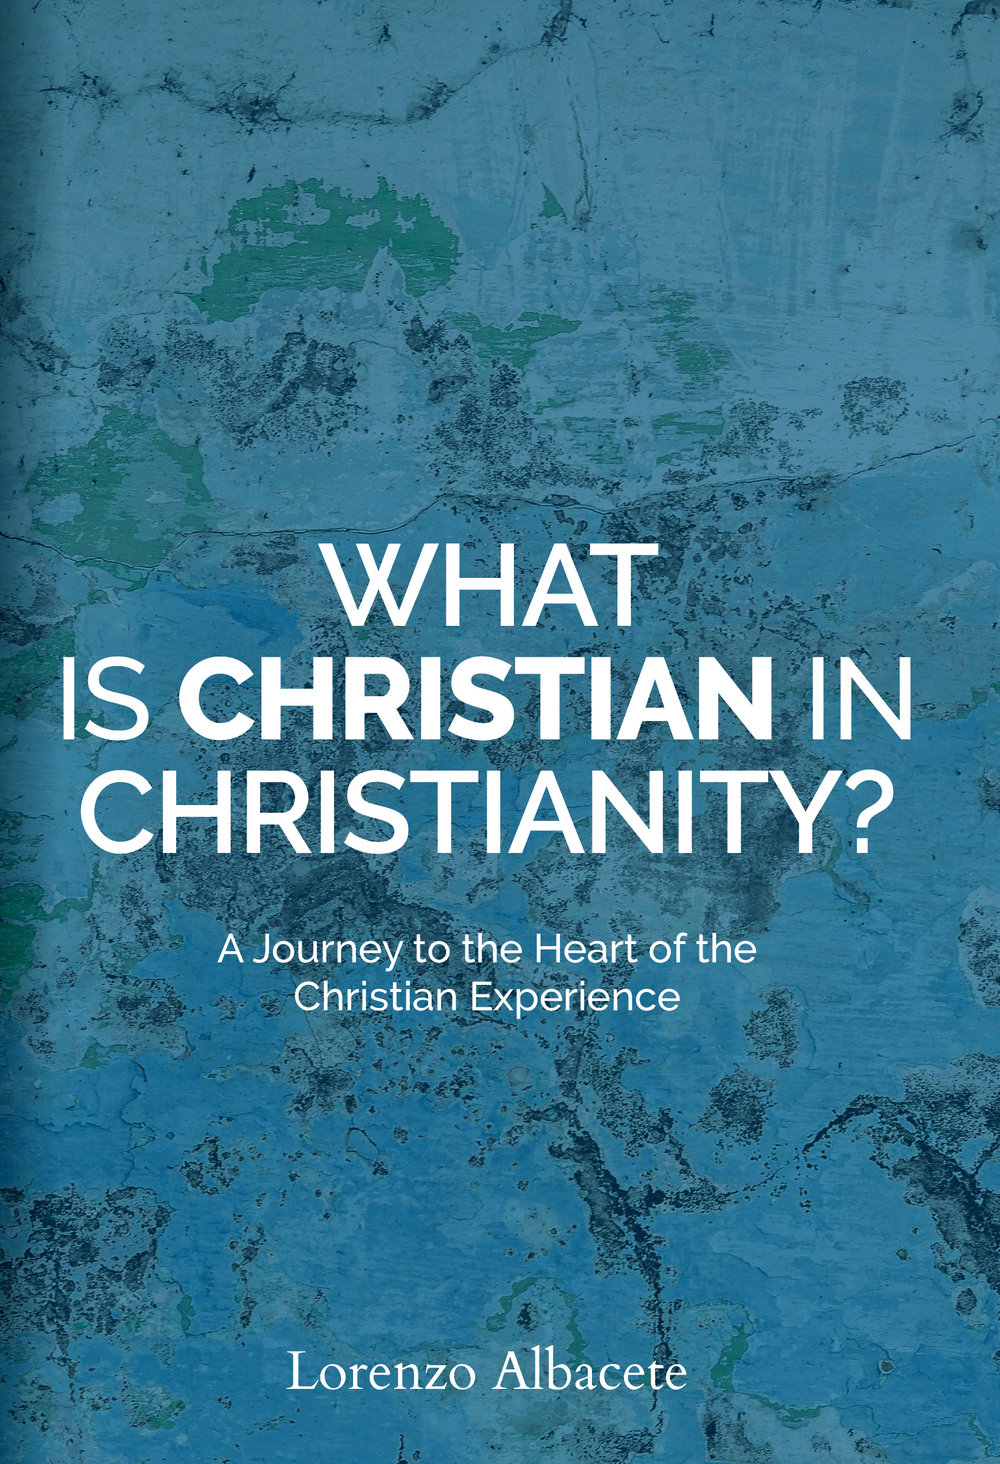 Lorenzo Albacete,  What Is Christian in Christianity?: A Journey to the Heart of the Christian Experience